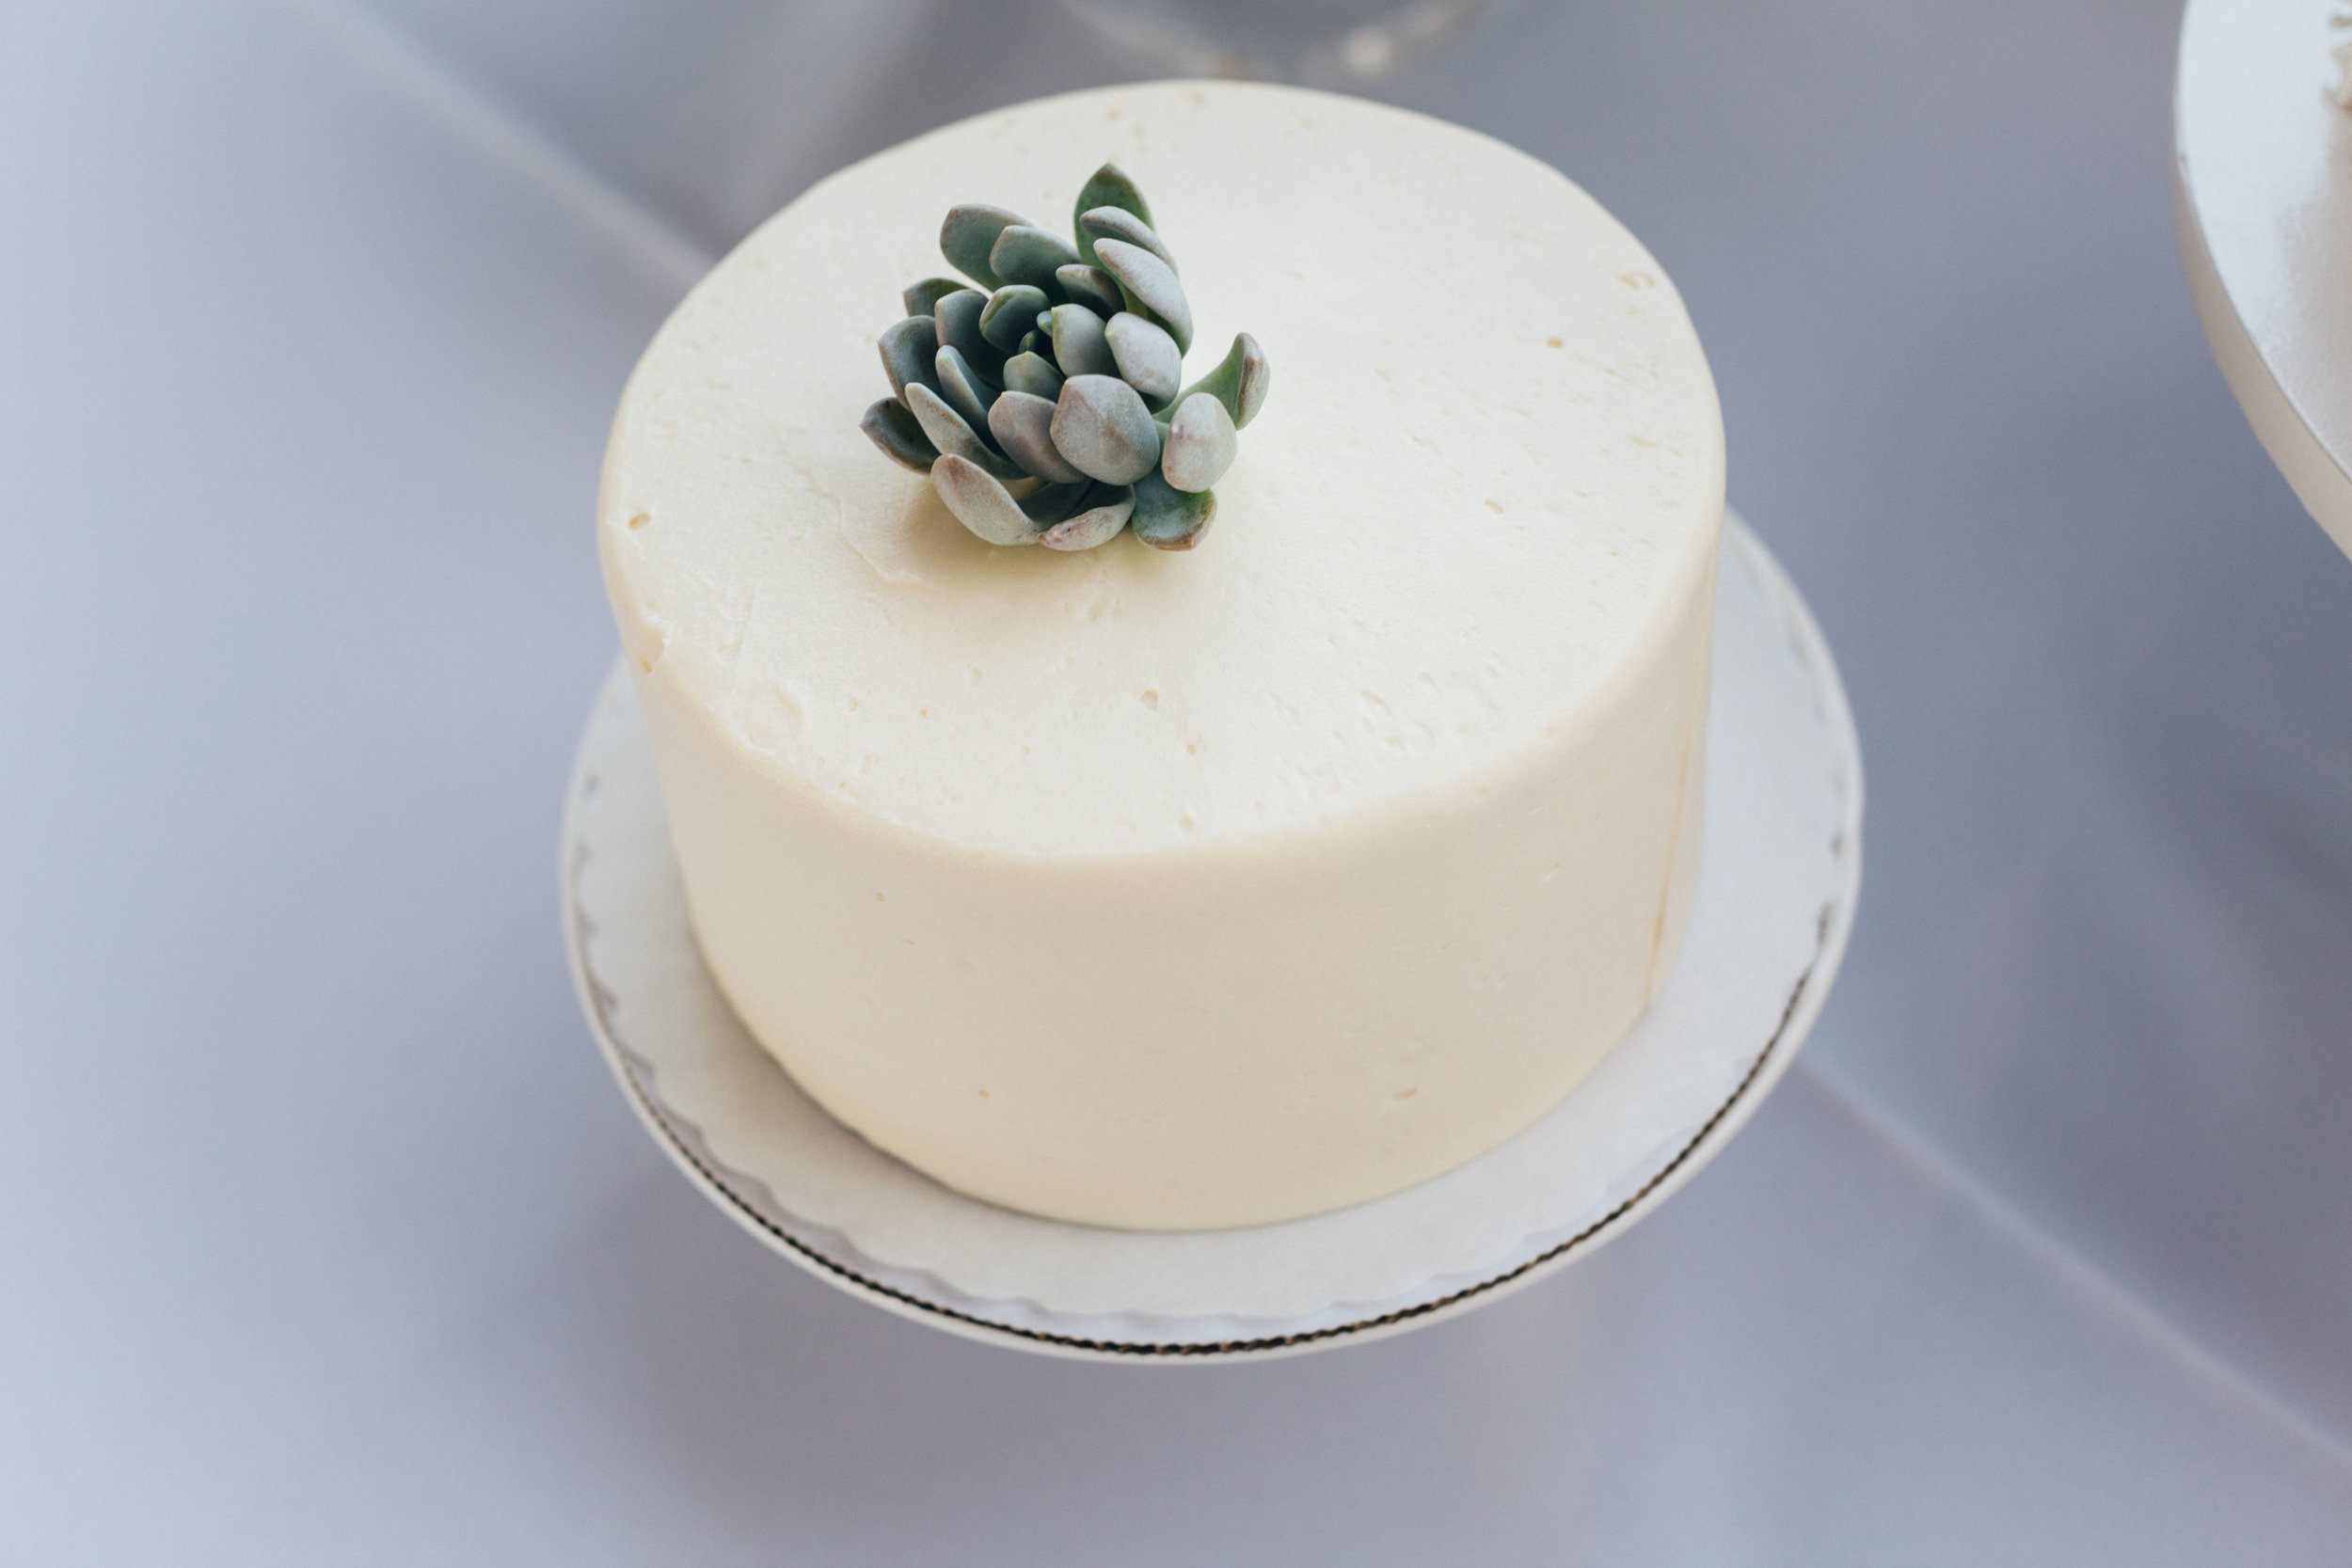 Wedding Cake - San Francisco Gourmet Catering Company - Fraiche Catering